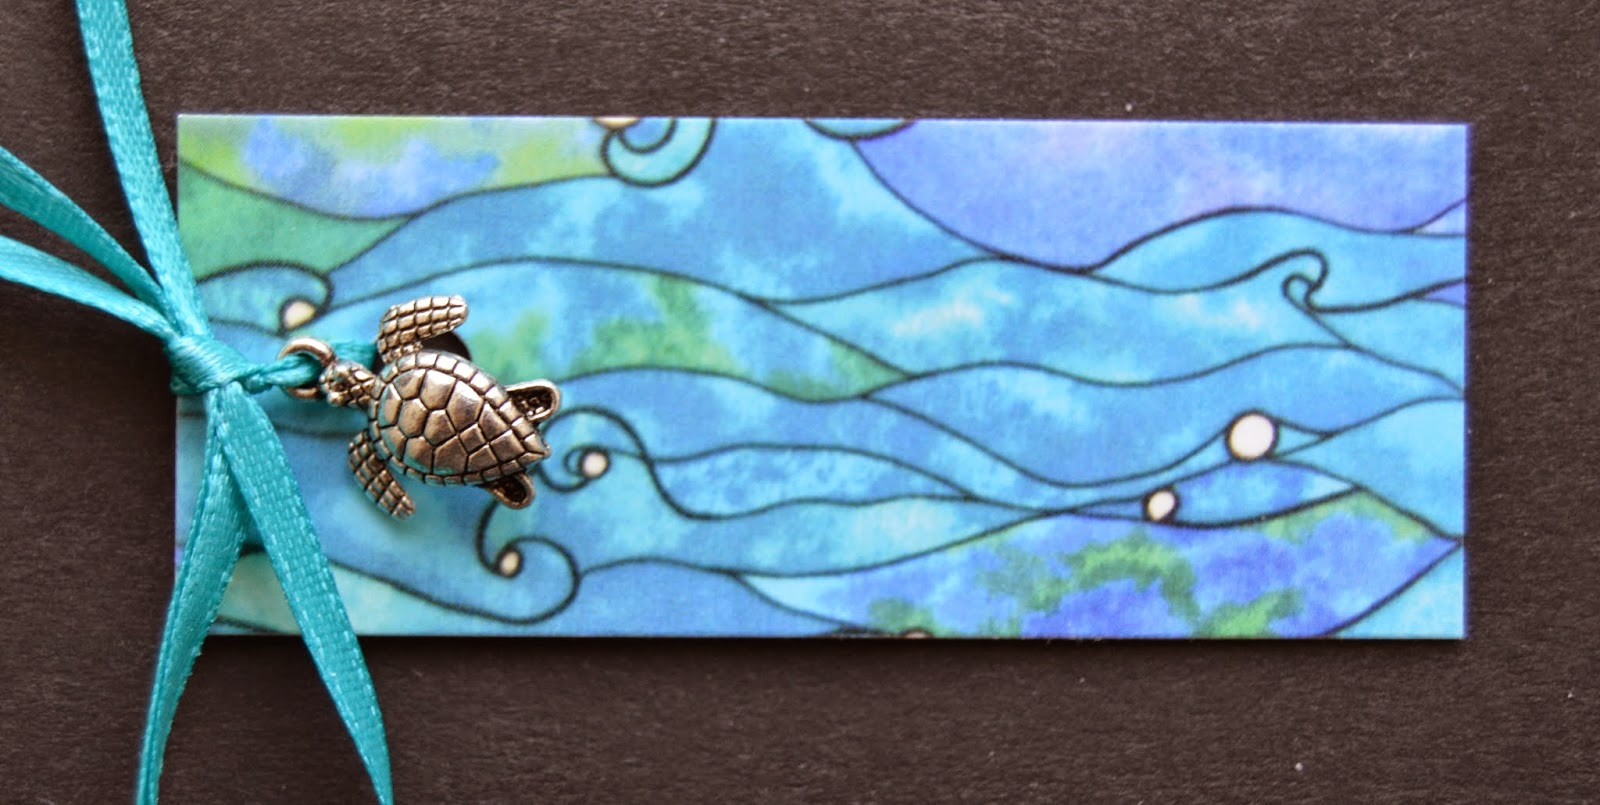 turtle charm as part of the packaging from Ocean Patch Etsy shop